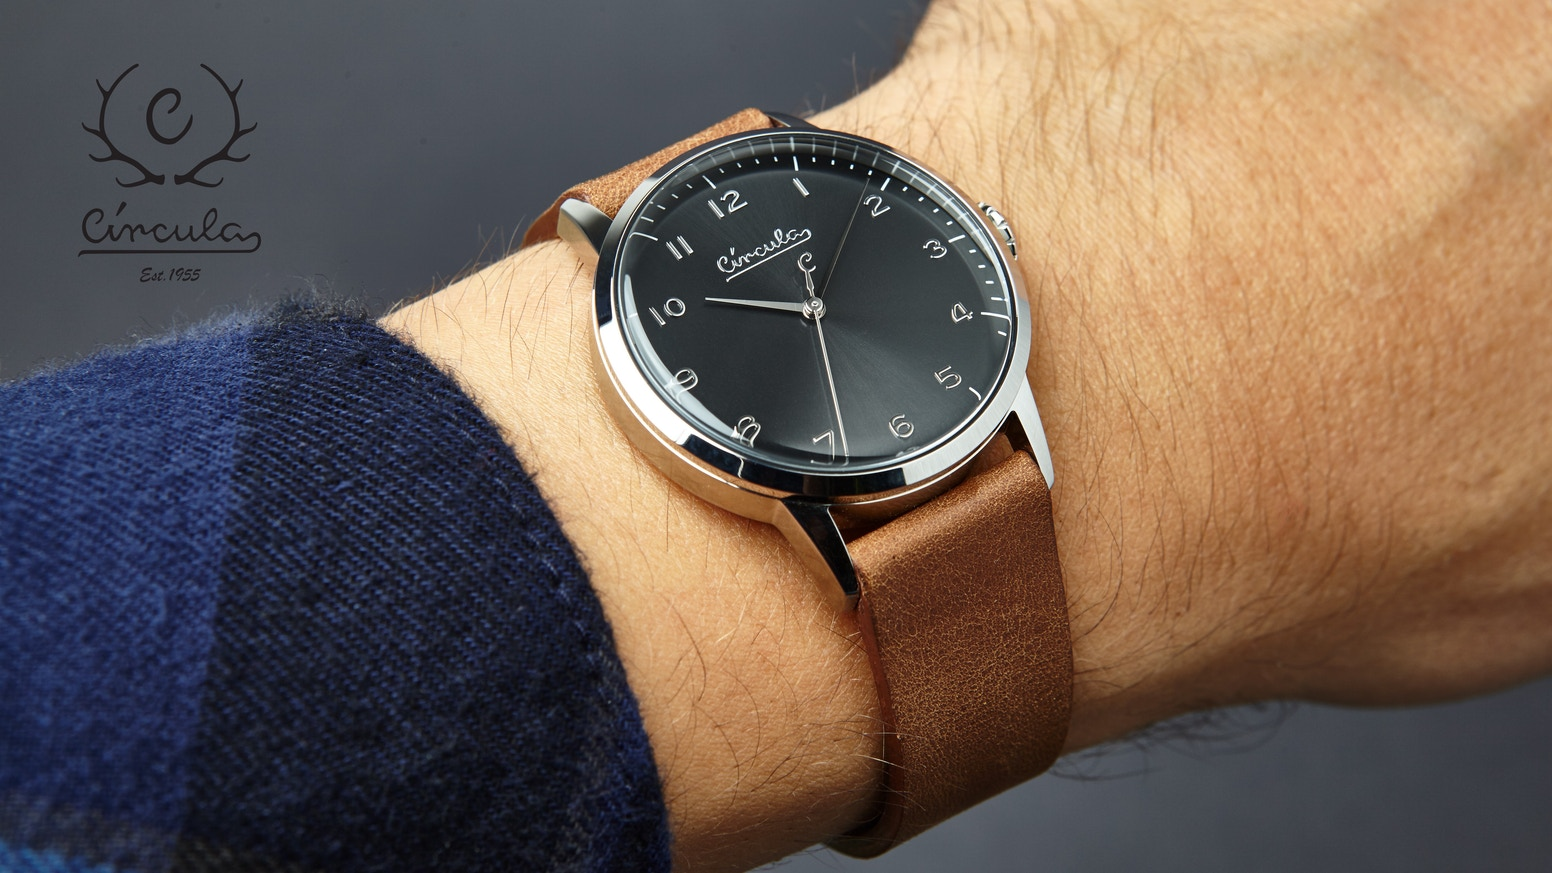 After the successful Kickstarter, our new shop is now online. Visit our homepage and get your elegant and bold, Swiss Made watch with a history that started 1955 in the Black Forest.